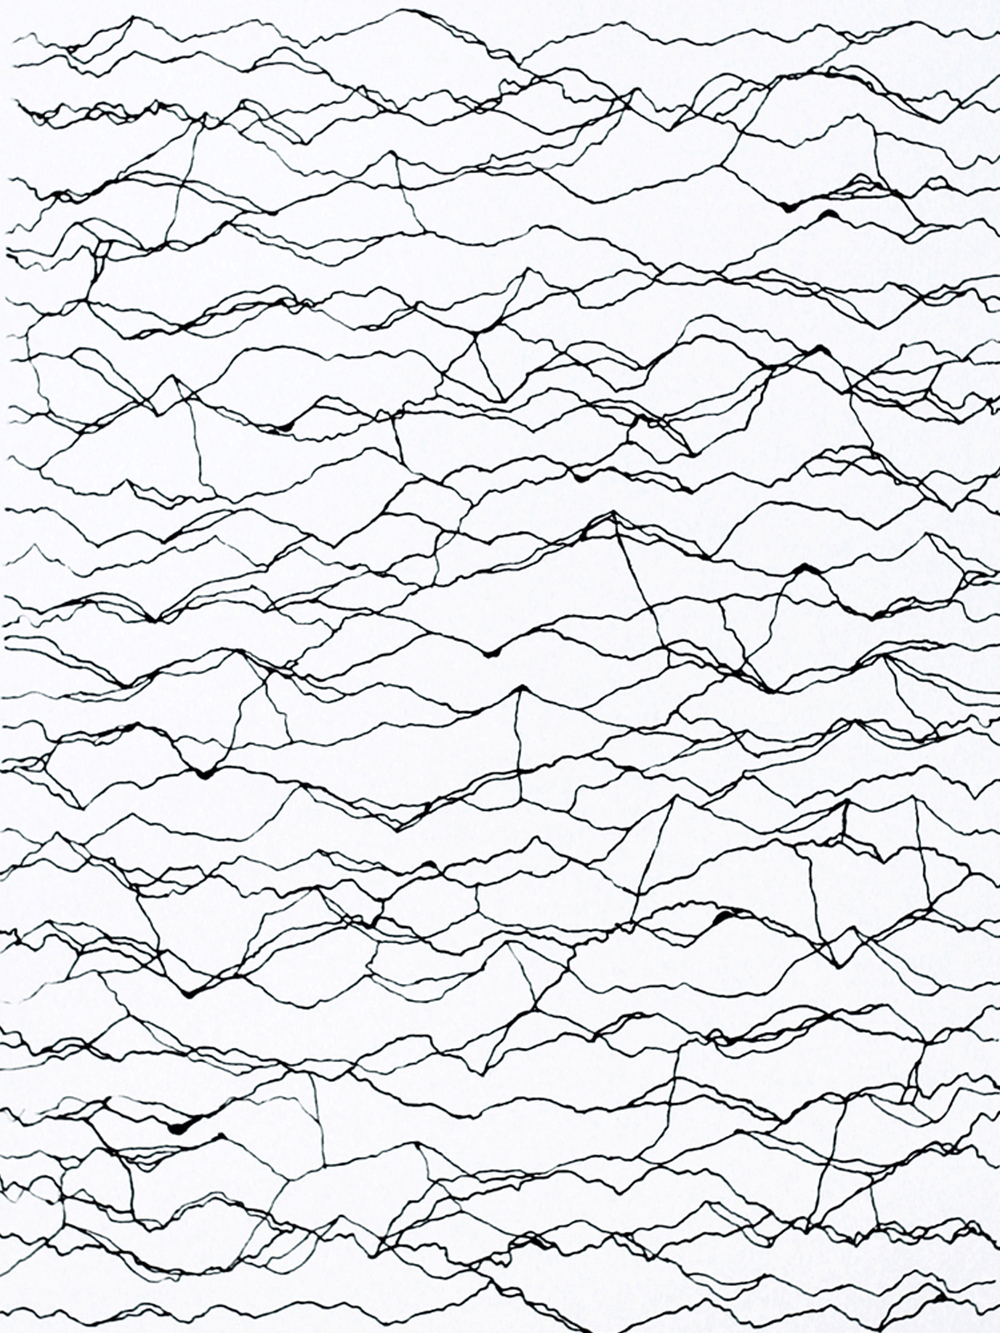 Untitled_Waves_Grey_Edition of 2_48x60cm_Crop_lg.jpg